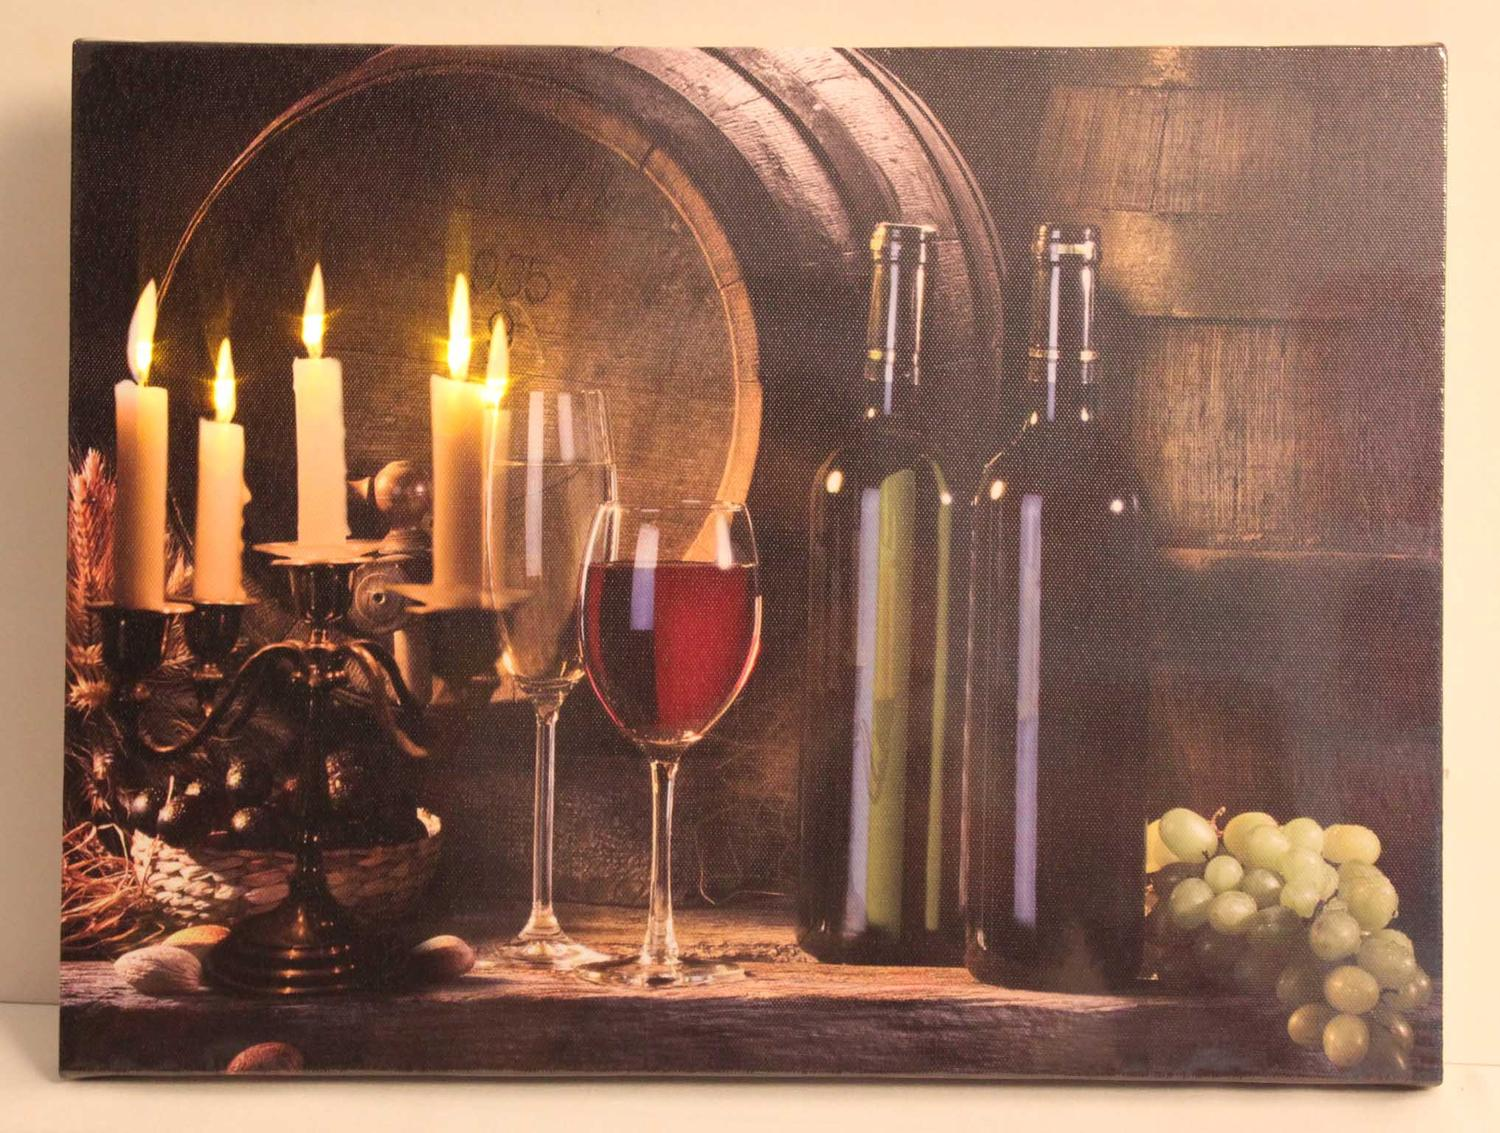 ''LED Lighted Flickering Candles and Wine Canvas Wall Art 11.75'''' x 15.75''''''